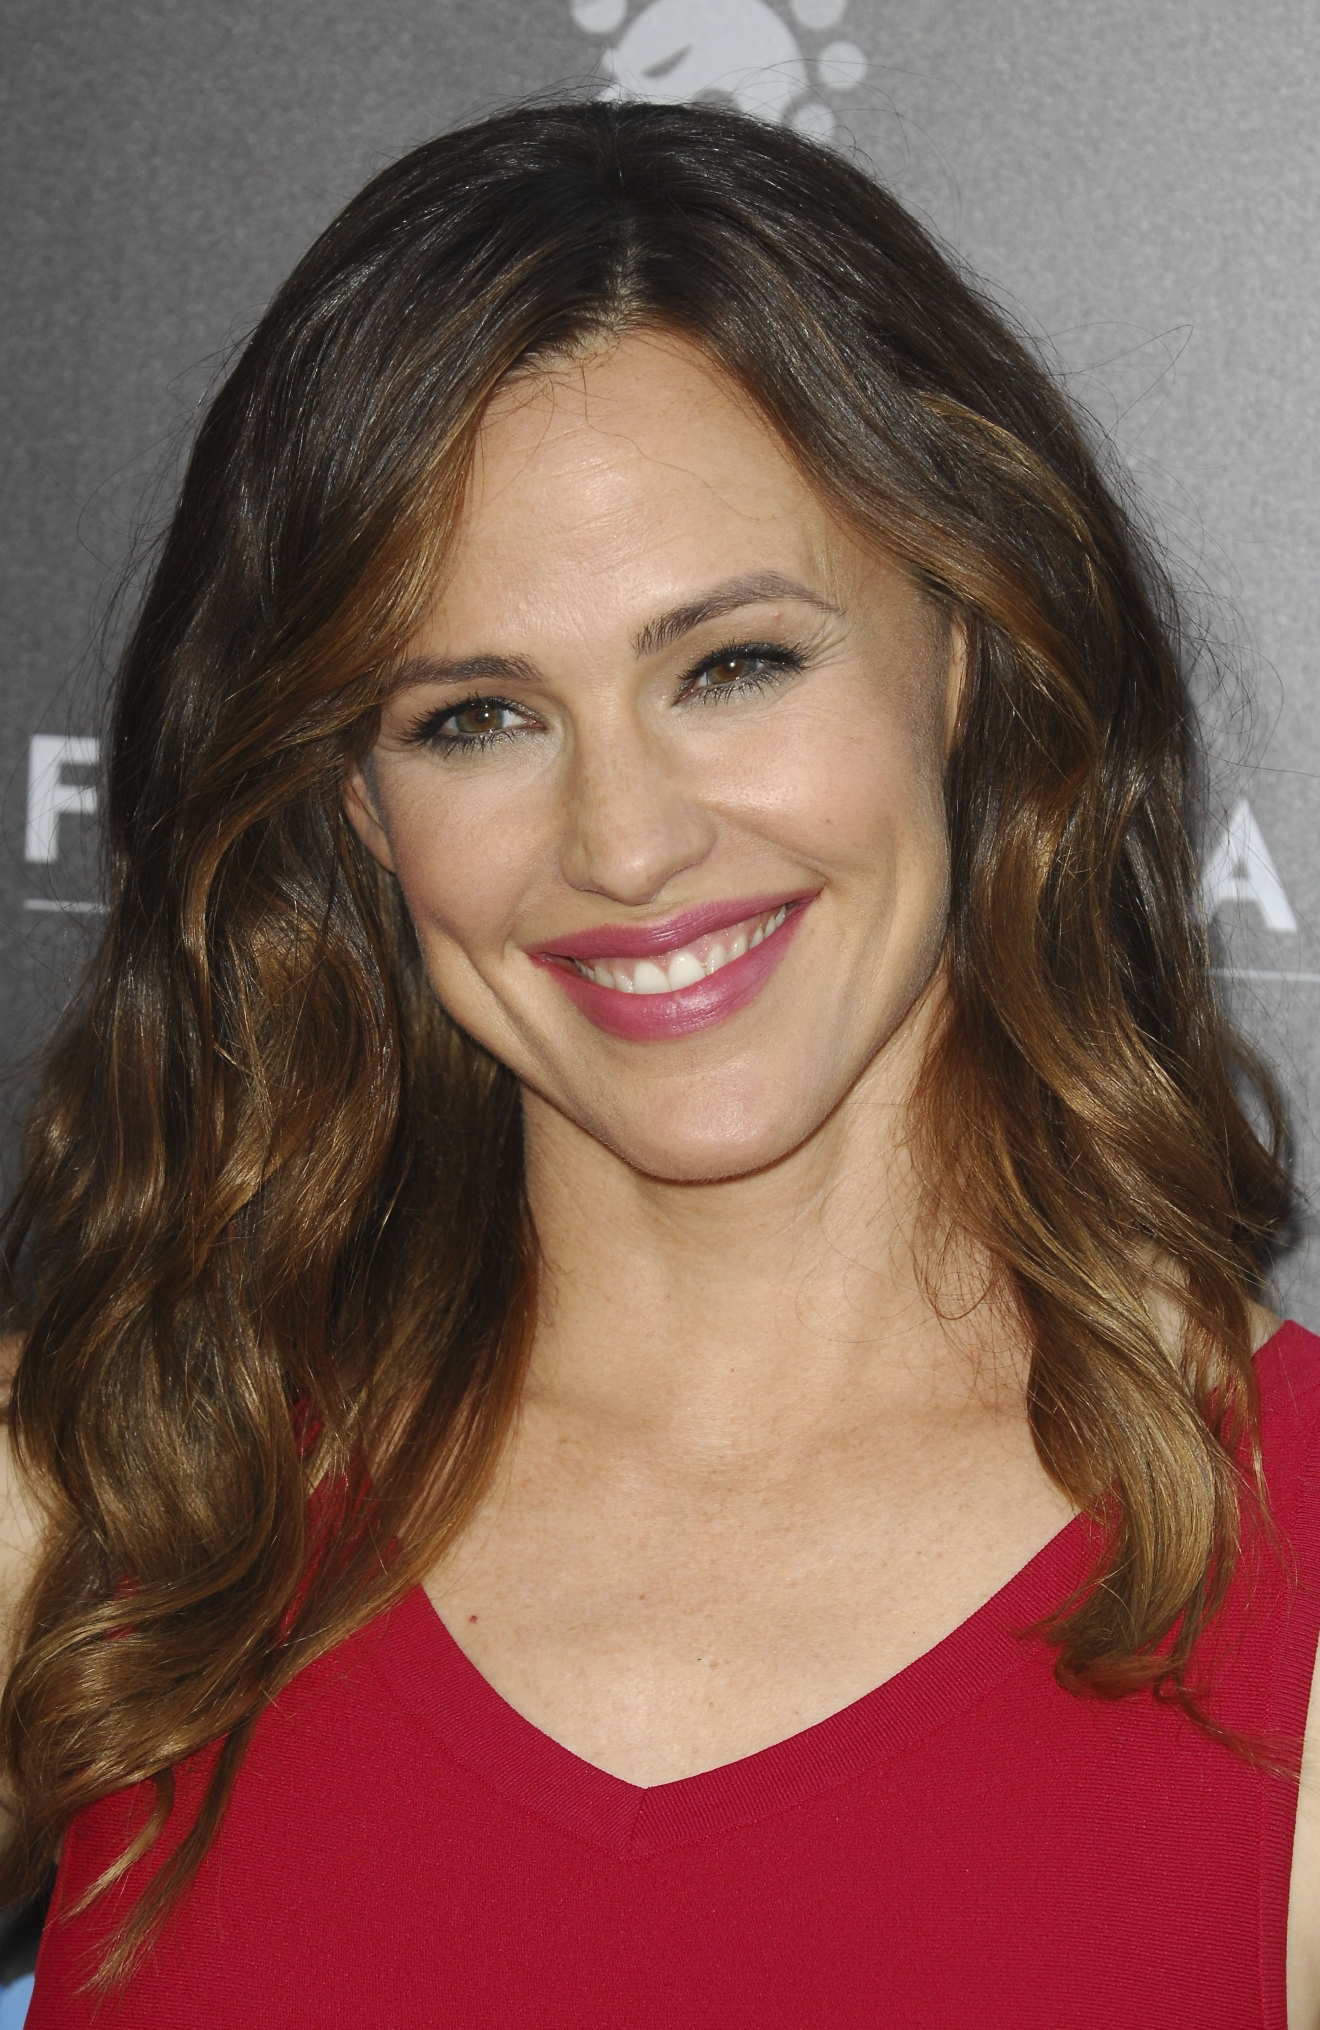 Film Premiere of Nine Lives                                    Featuring: Jennifer Garner                  Where: Los Angeles, California, United States                  When: 02 Aug 2016                  Credit: Apega/WENN.com